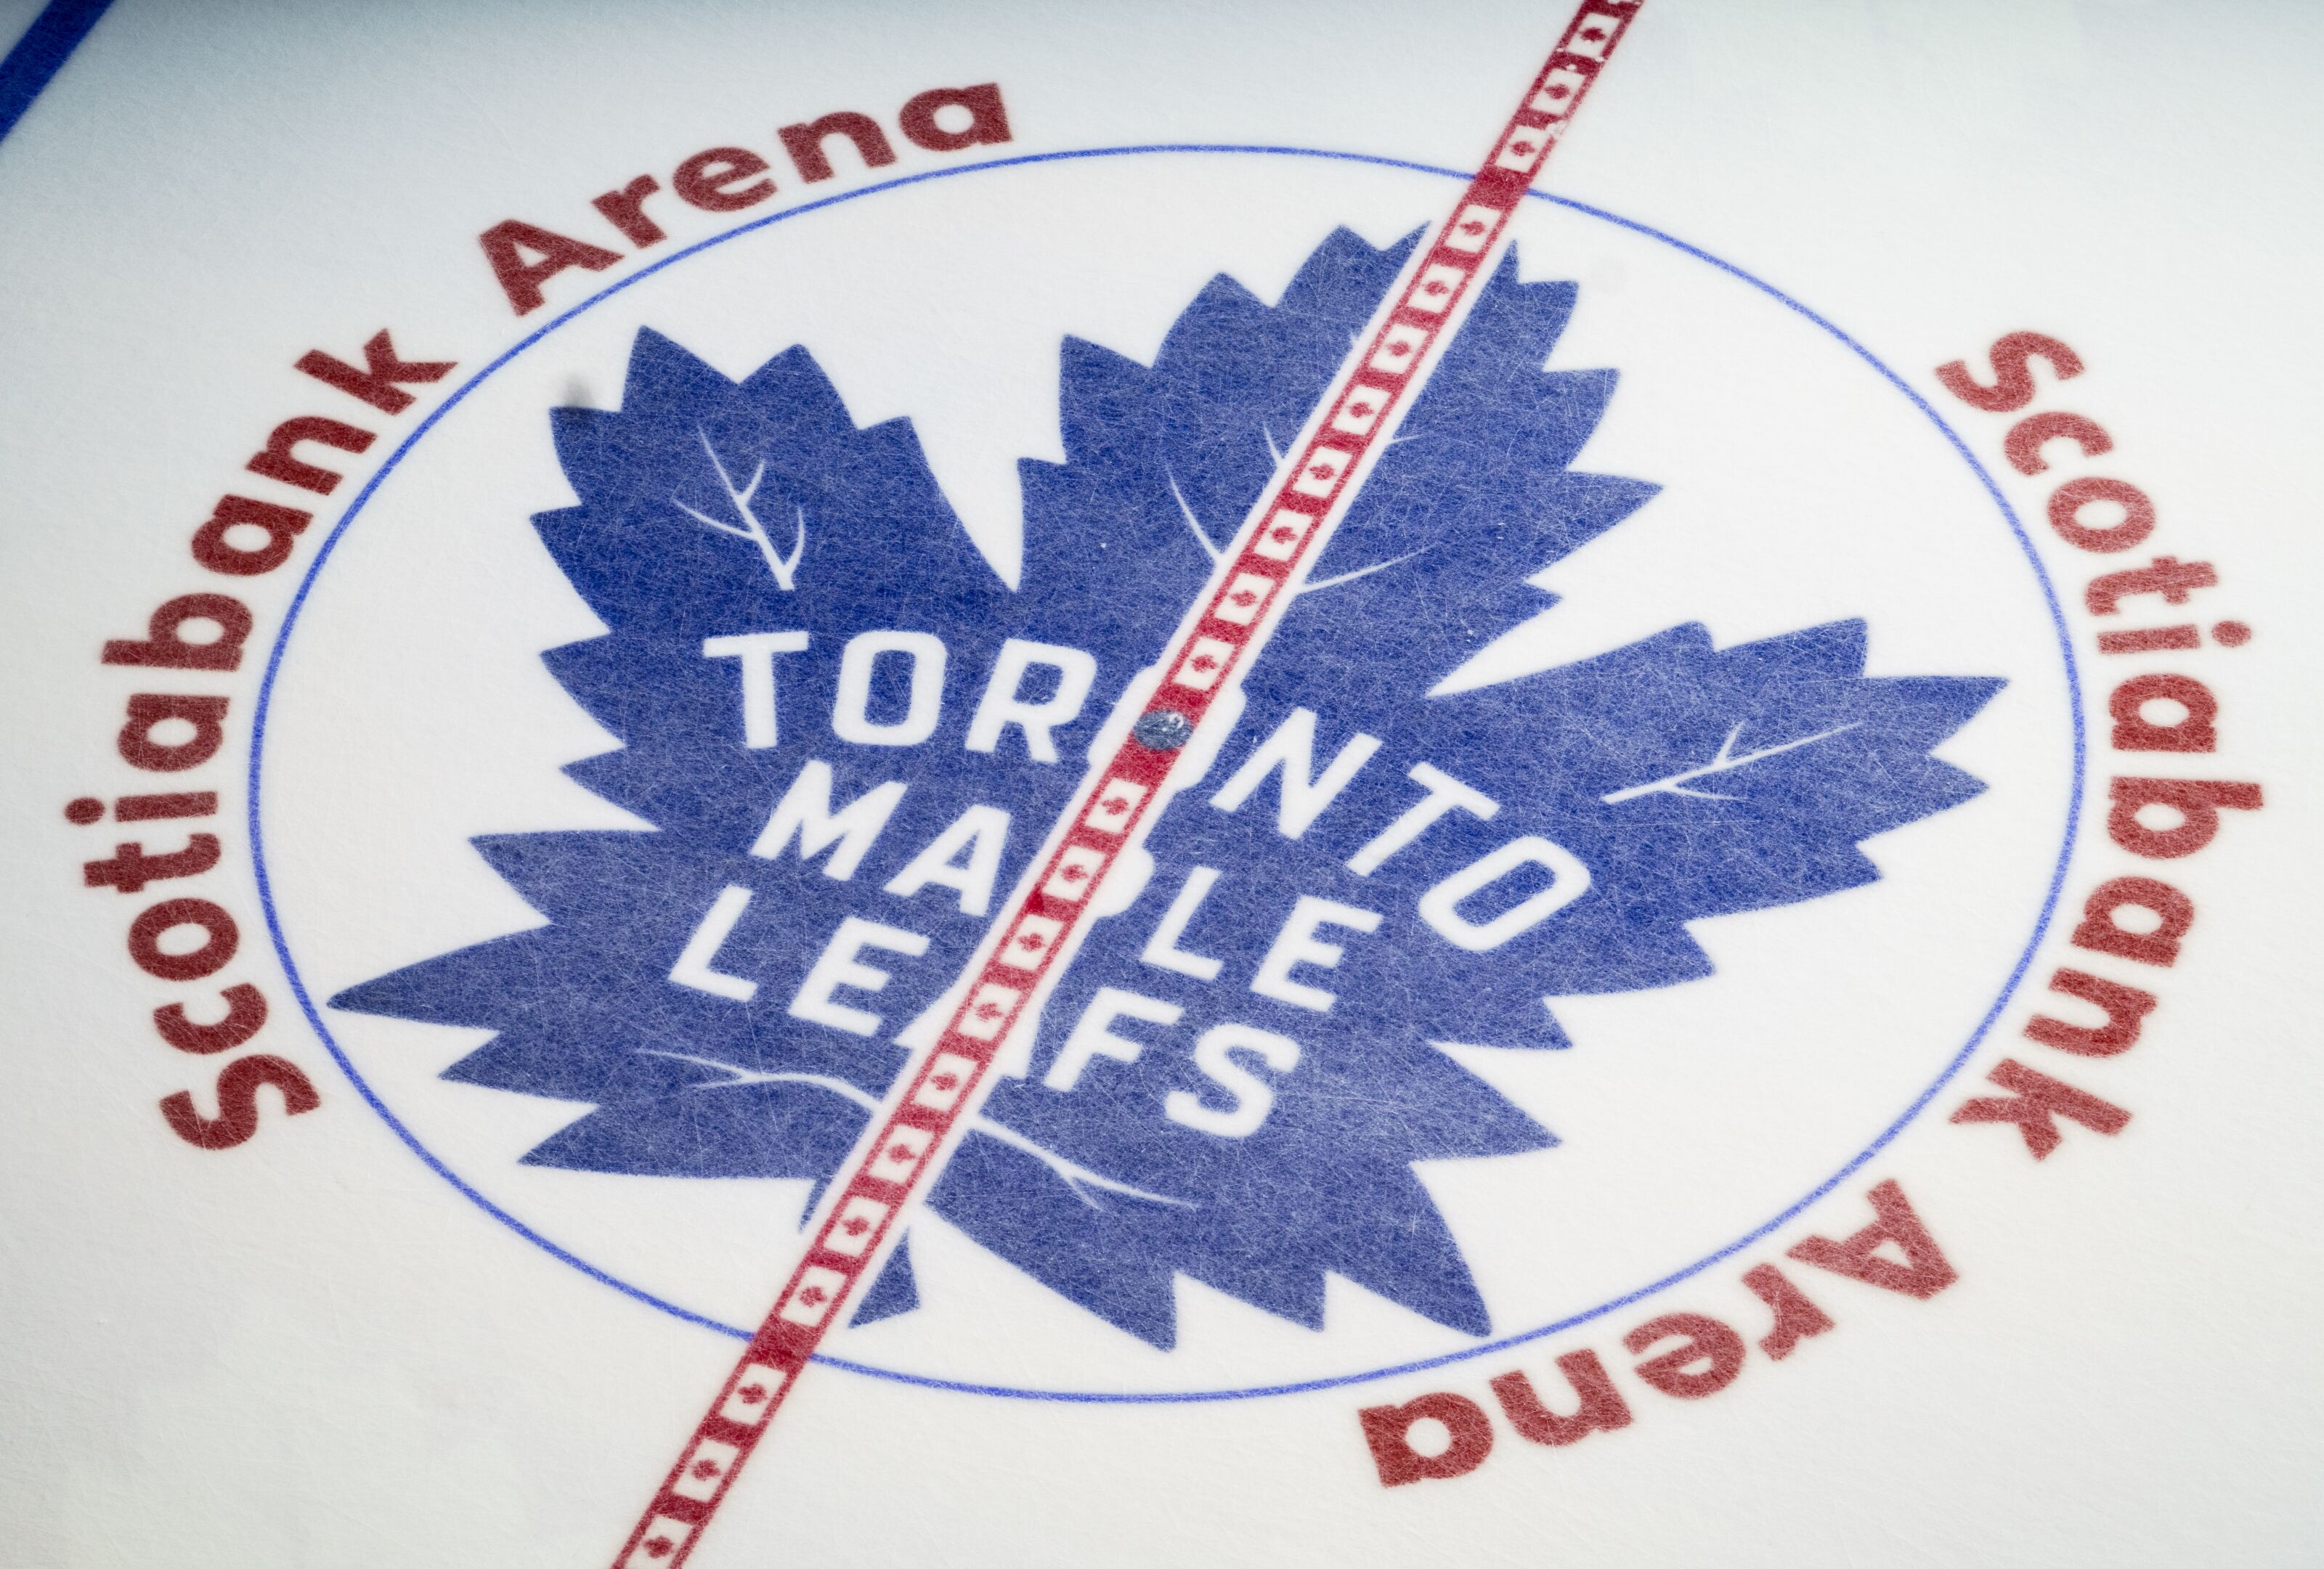 Toronto Maple Leafs: The Only Offseason Decision That Matters